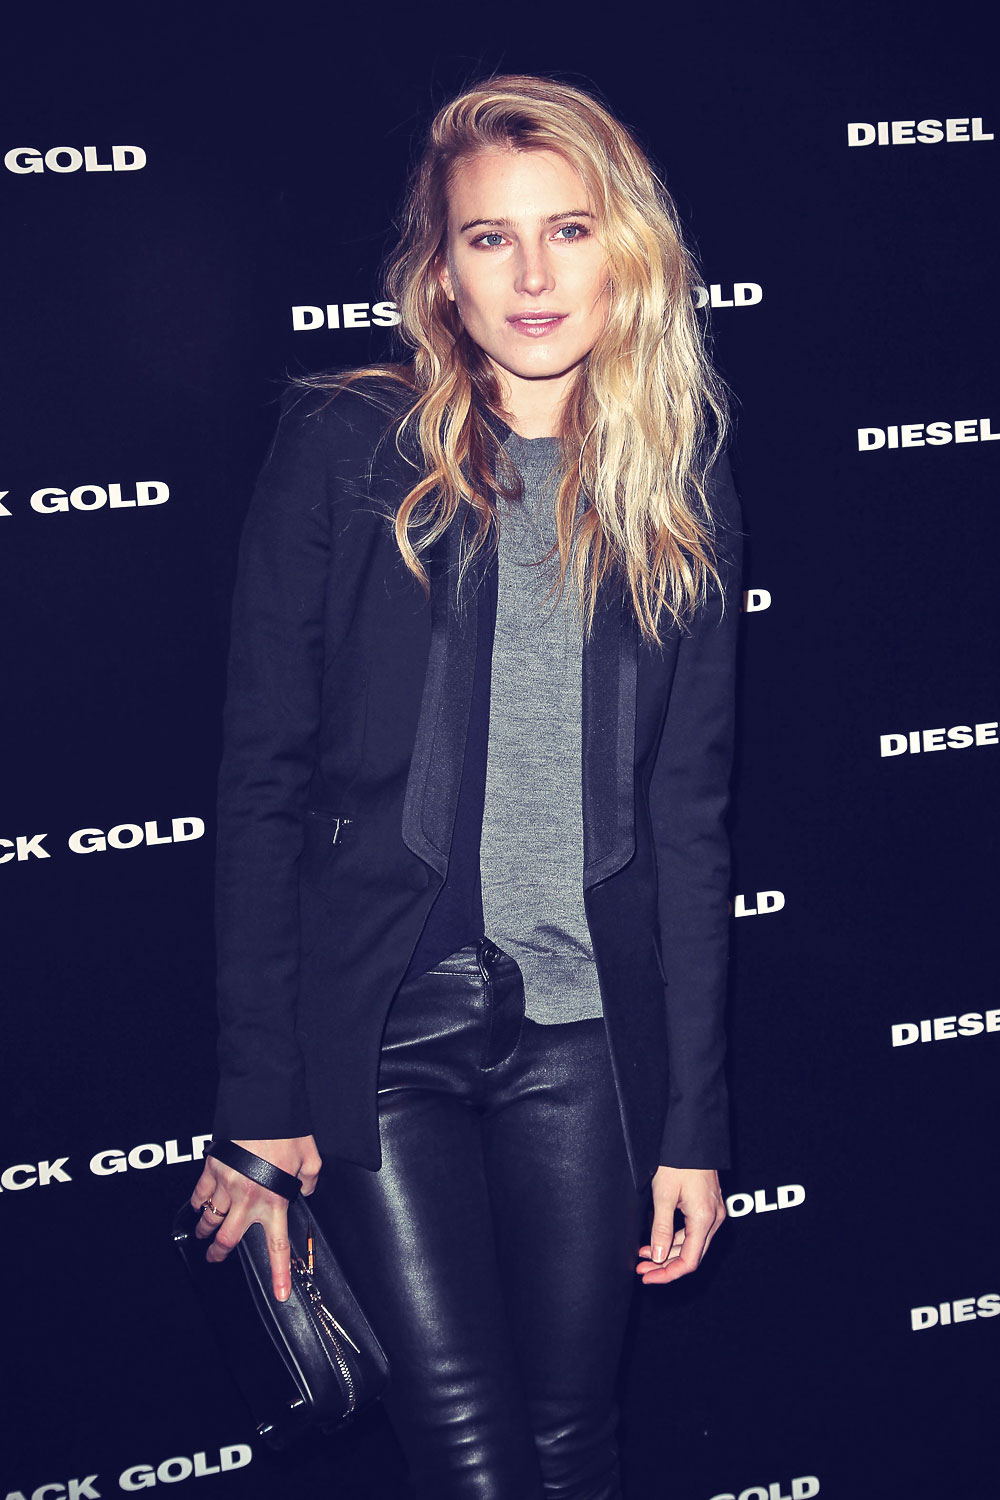 Dree Hemingway attends Diesel Black Gold Fashion Show